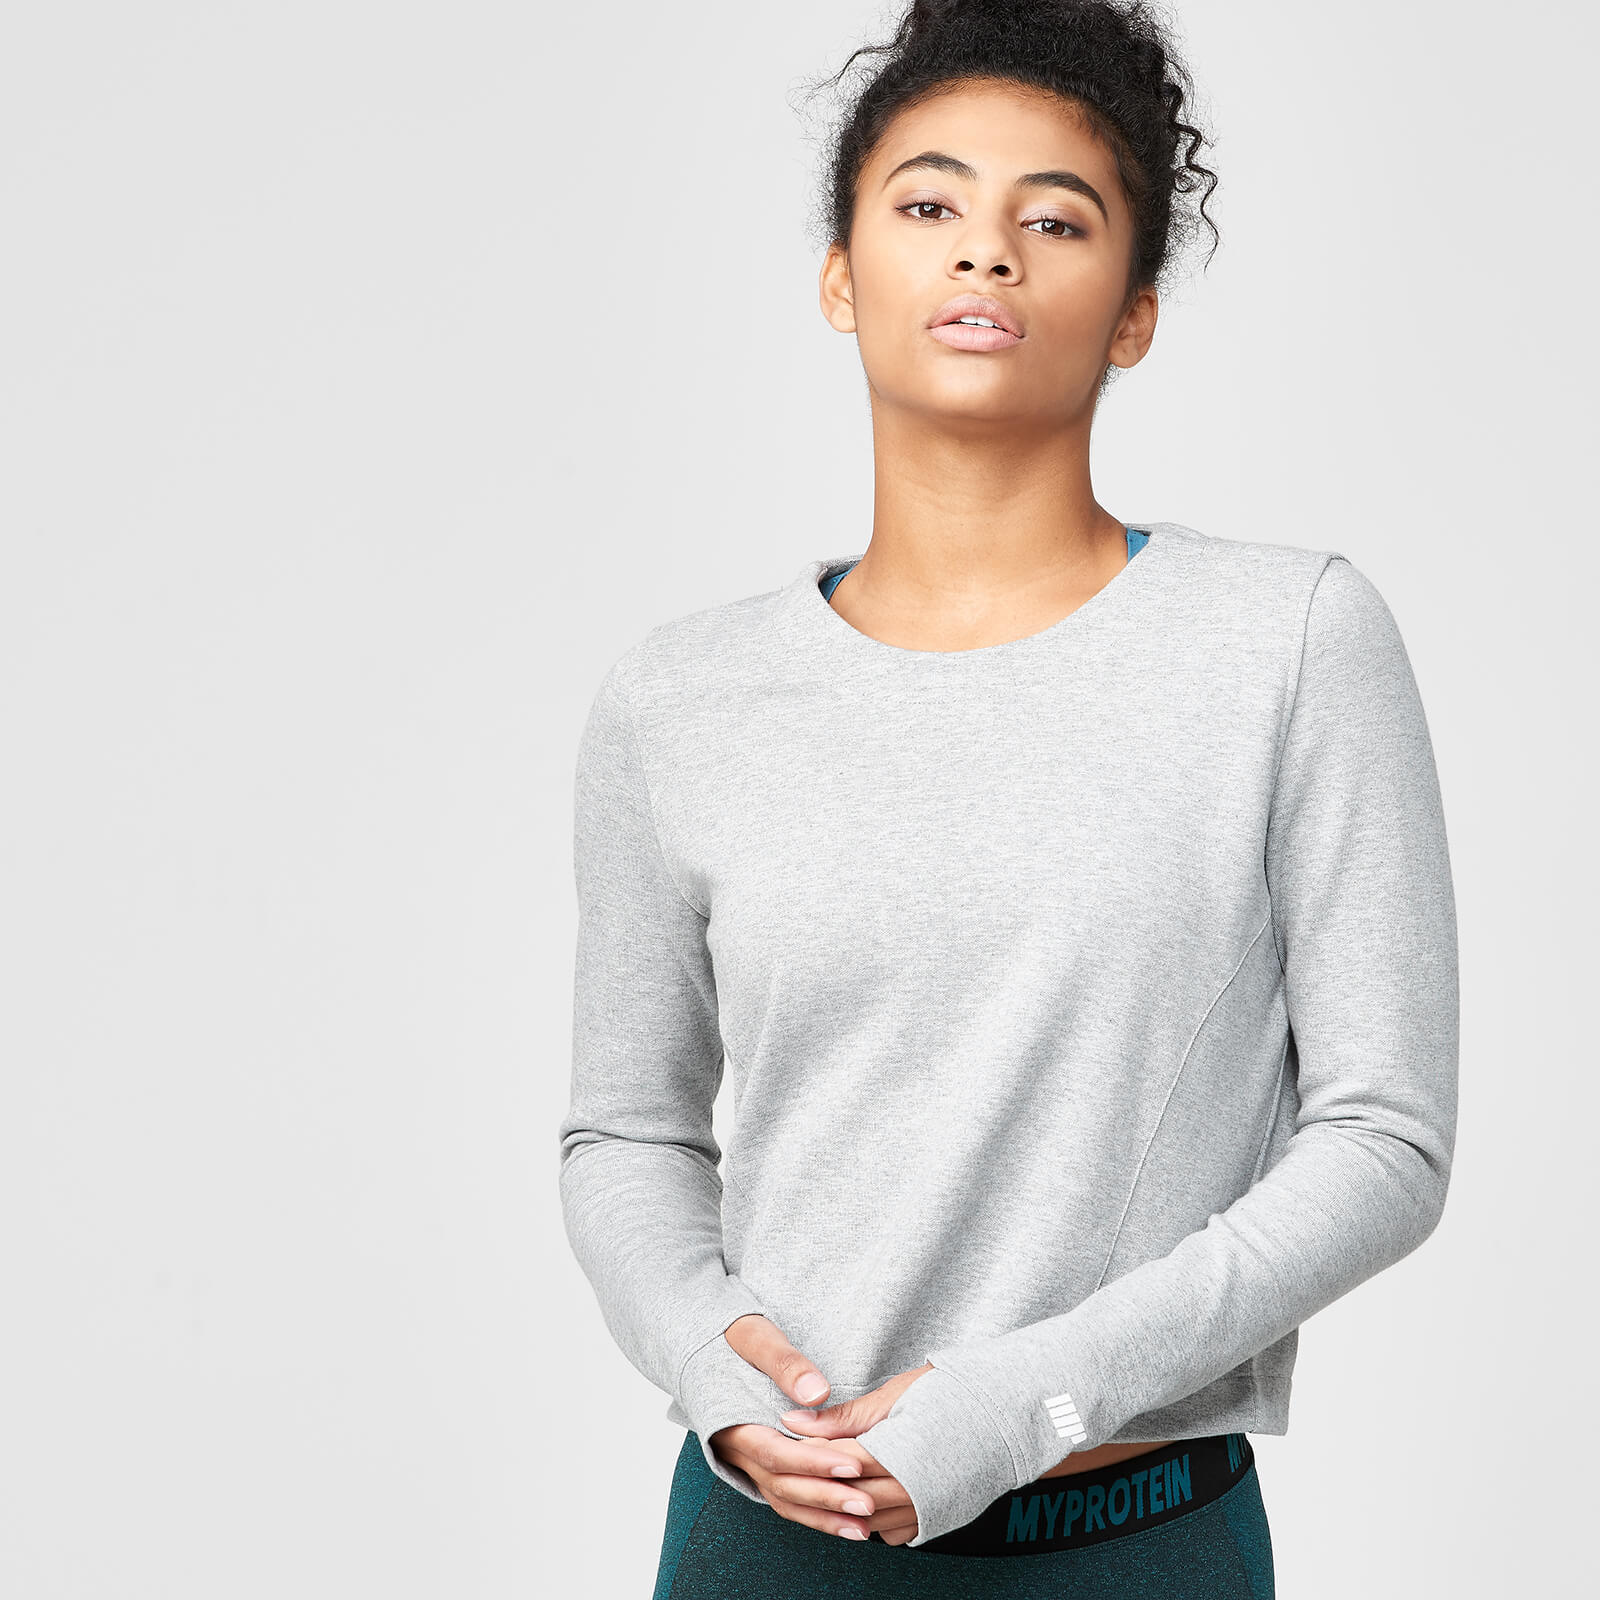 Pro Tech Crew Neck Top - Grey Marl - XL